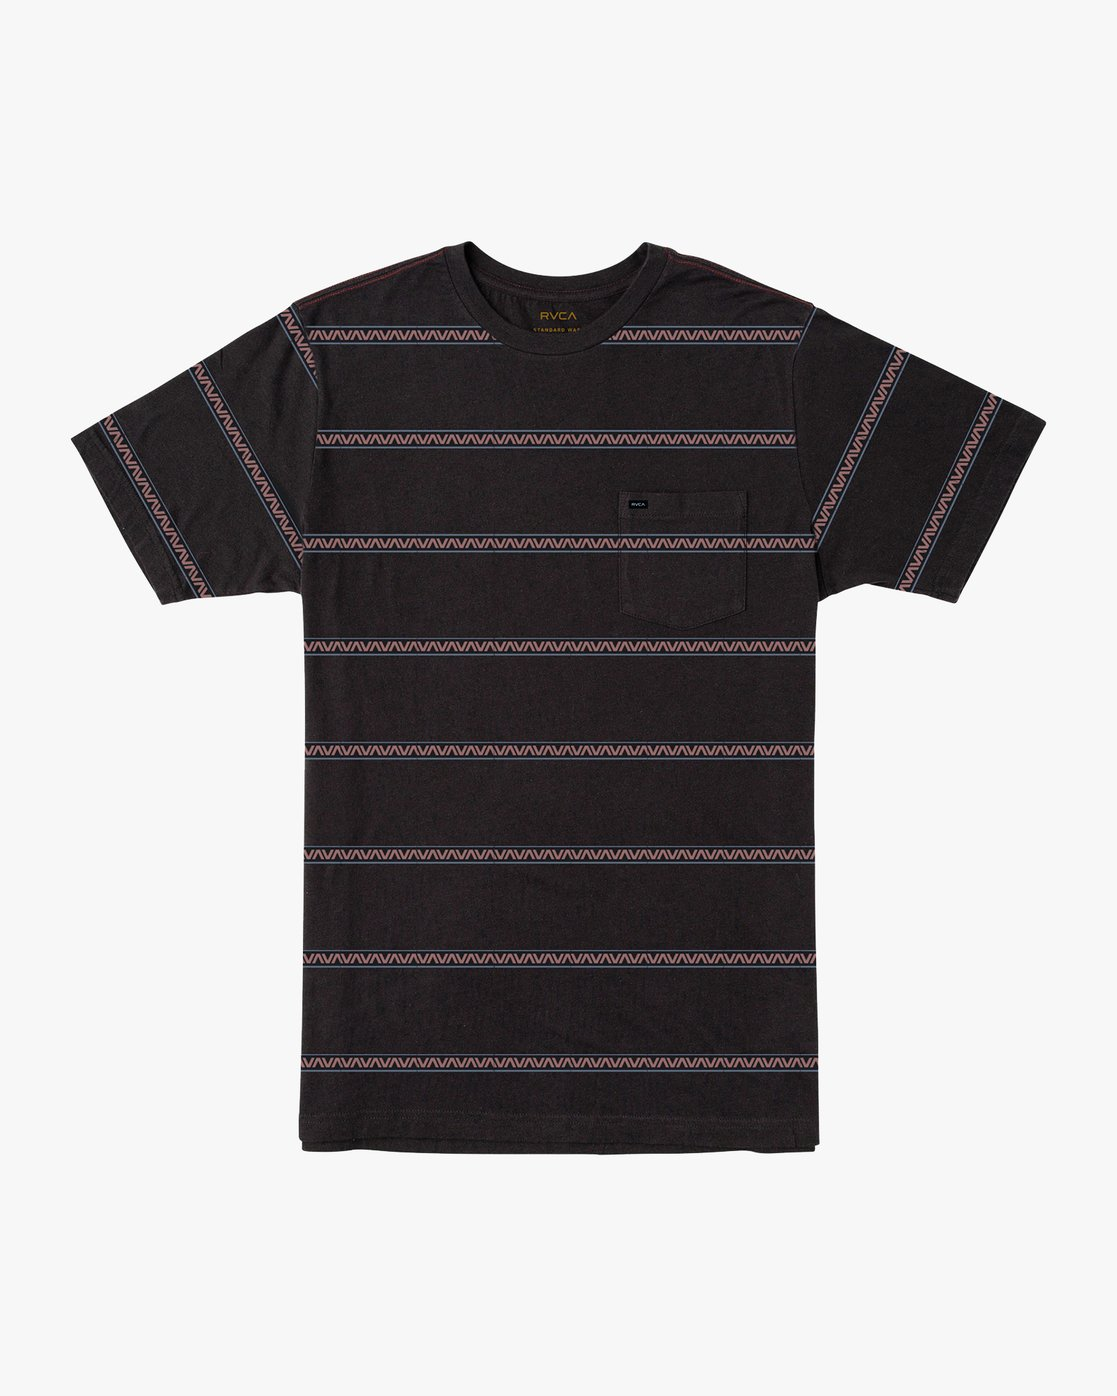 0 Retro VA Striped T-Shirt Black M436URRV RVCA